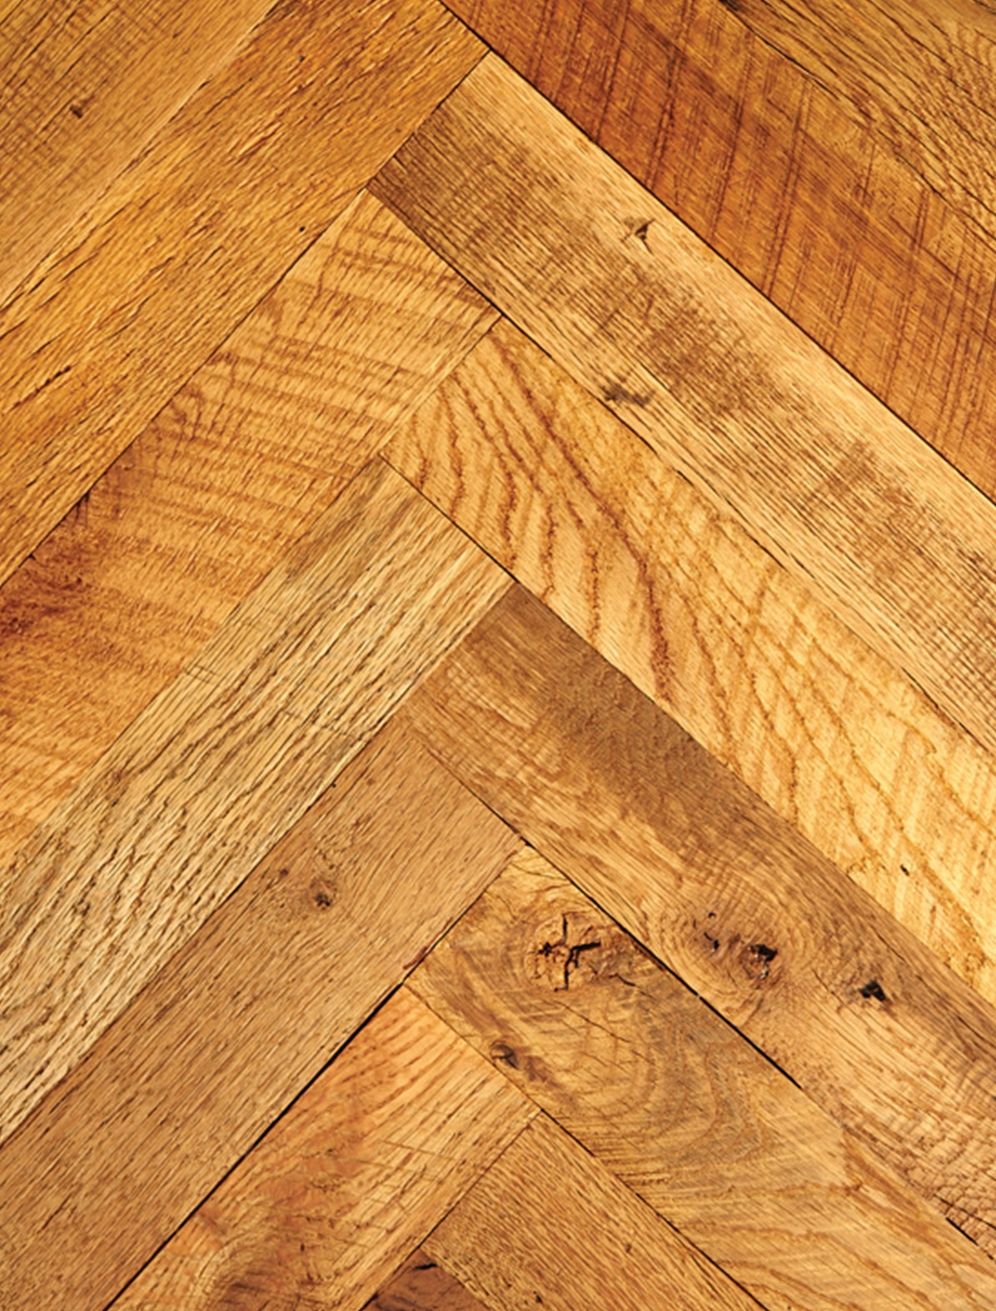 Reclaimed Mixed Oak Hardwood Flooring [Original Face, Herringbone]